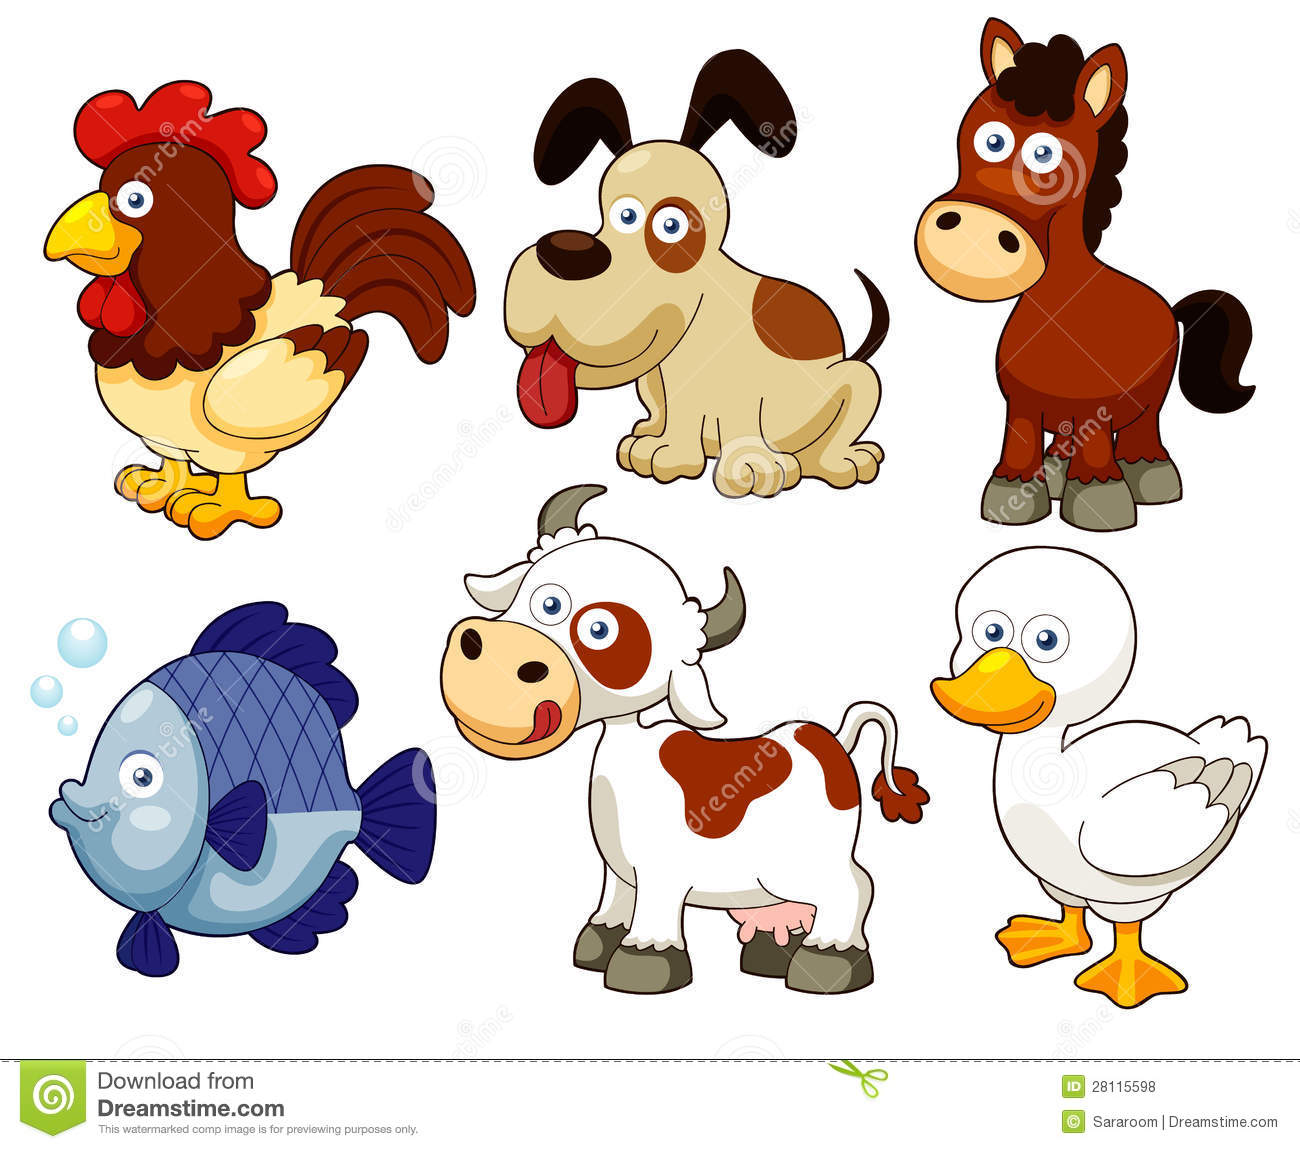 Free clipart for download banner download Free Farm Animal Clipart & Farm Animal Clip Art Images ... banner download